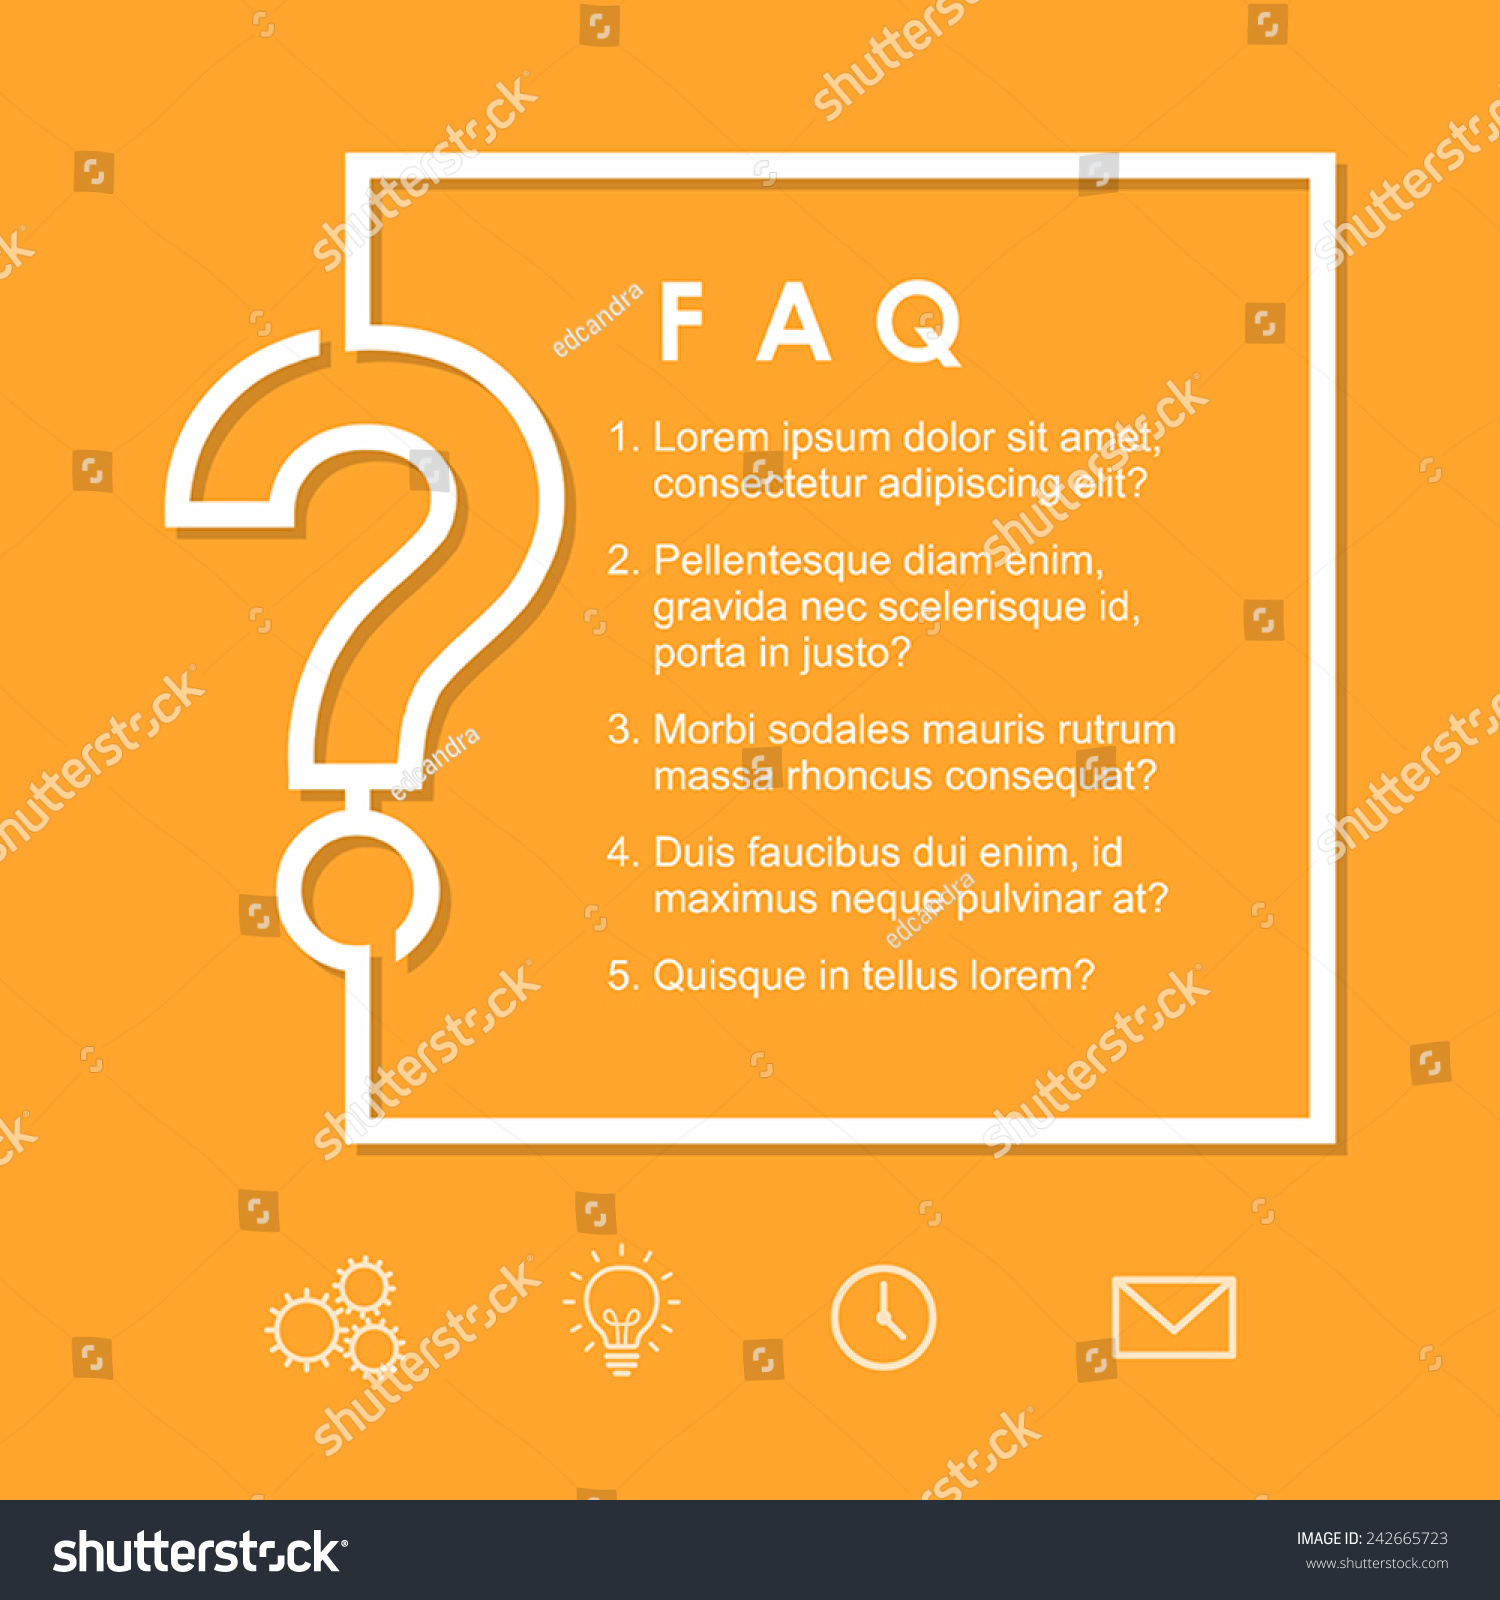 Delighted Html Faq Template Photos - Entry Level Resume Templates ...